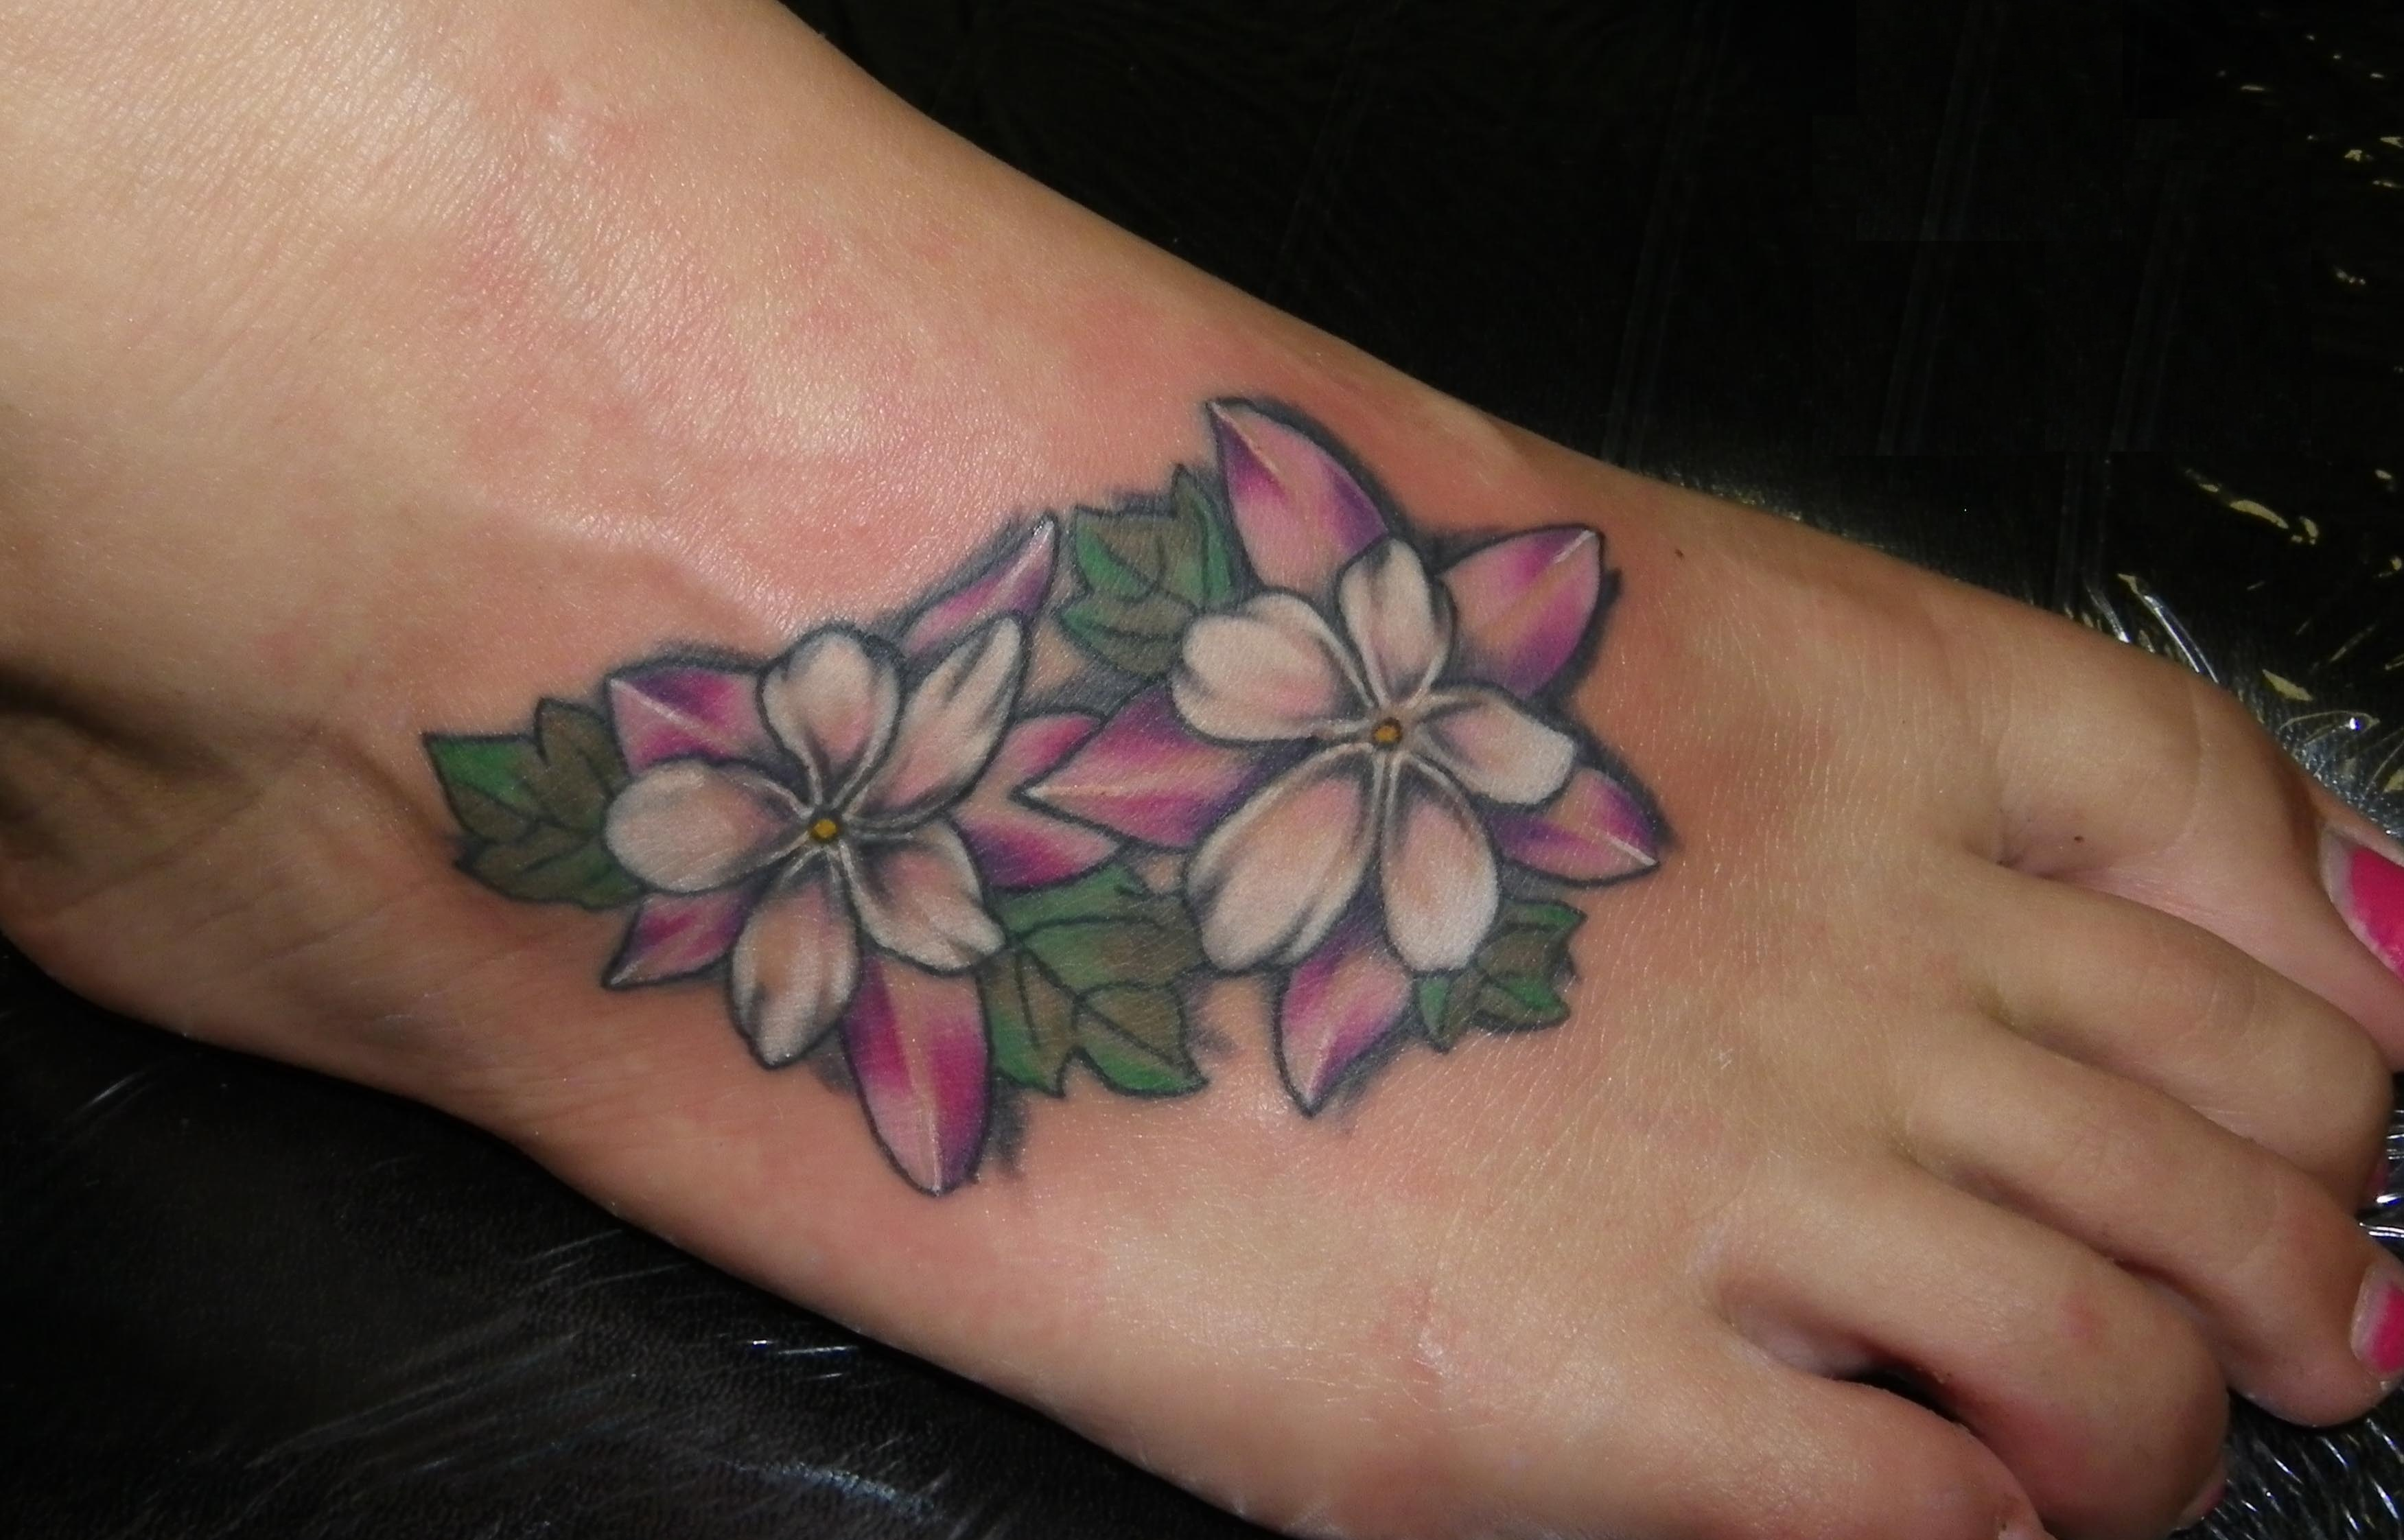 Flower Ankle Tattoo: Flower Tattoos Designs, Ideas And Meaning